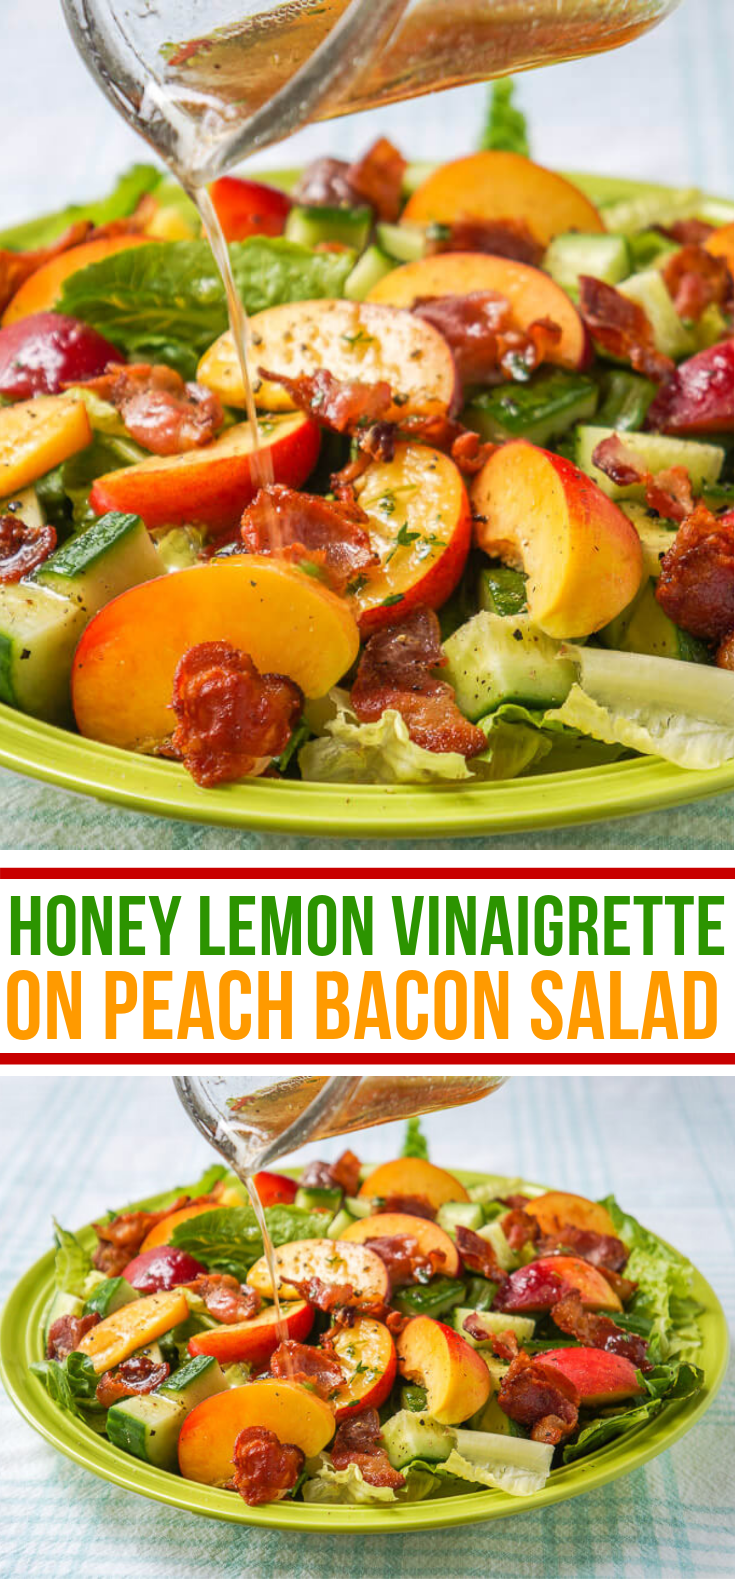 HONEY LEMON VINAIGRETTE ON PEACH BACON SALAD #vegetarian #fruits